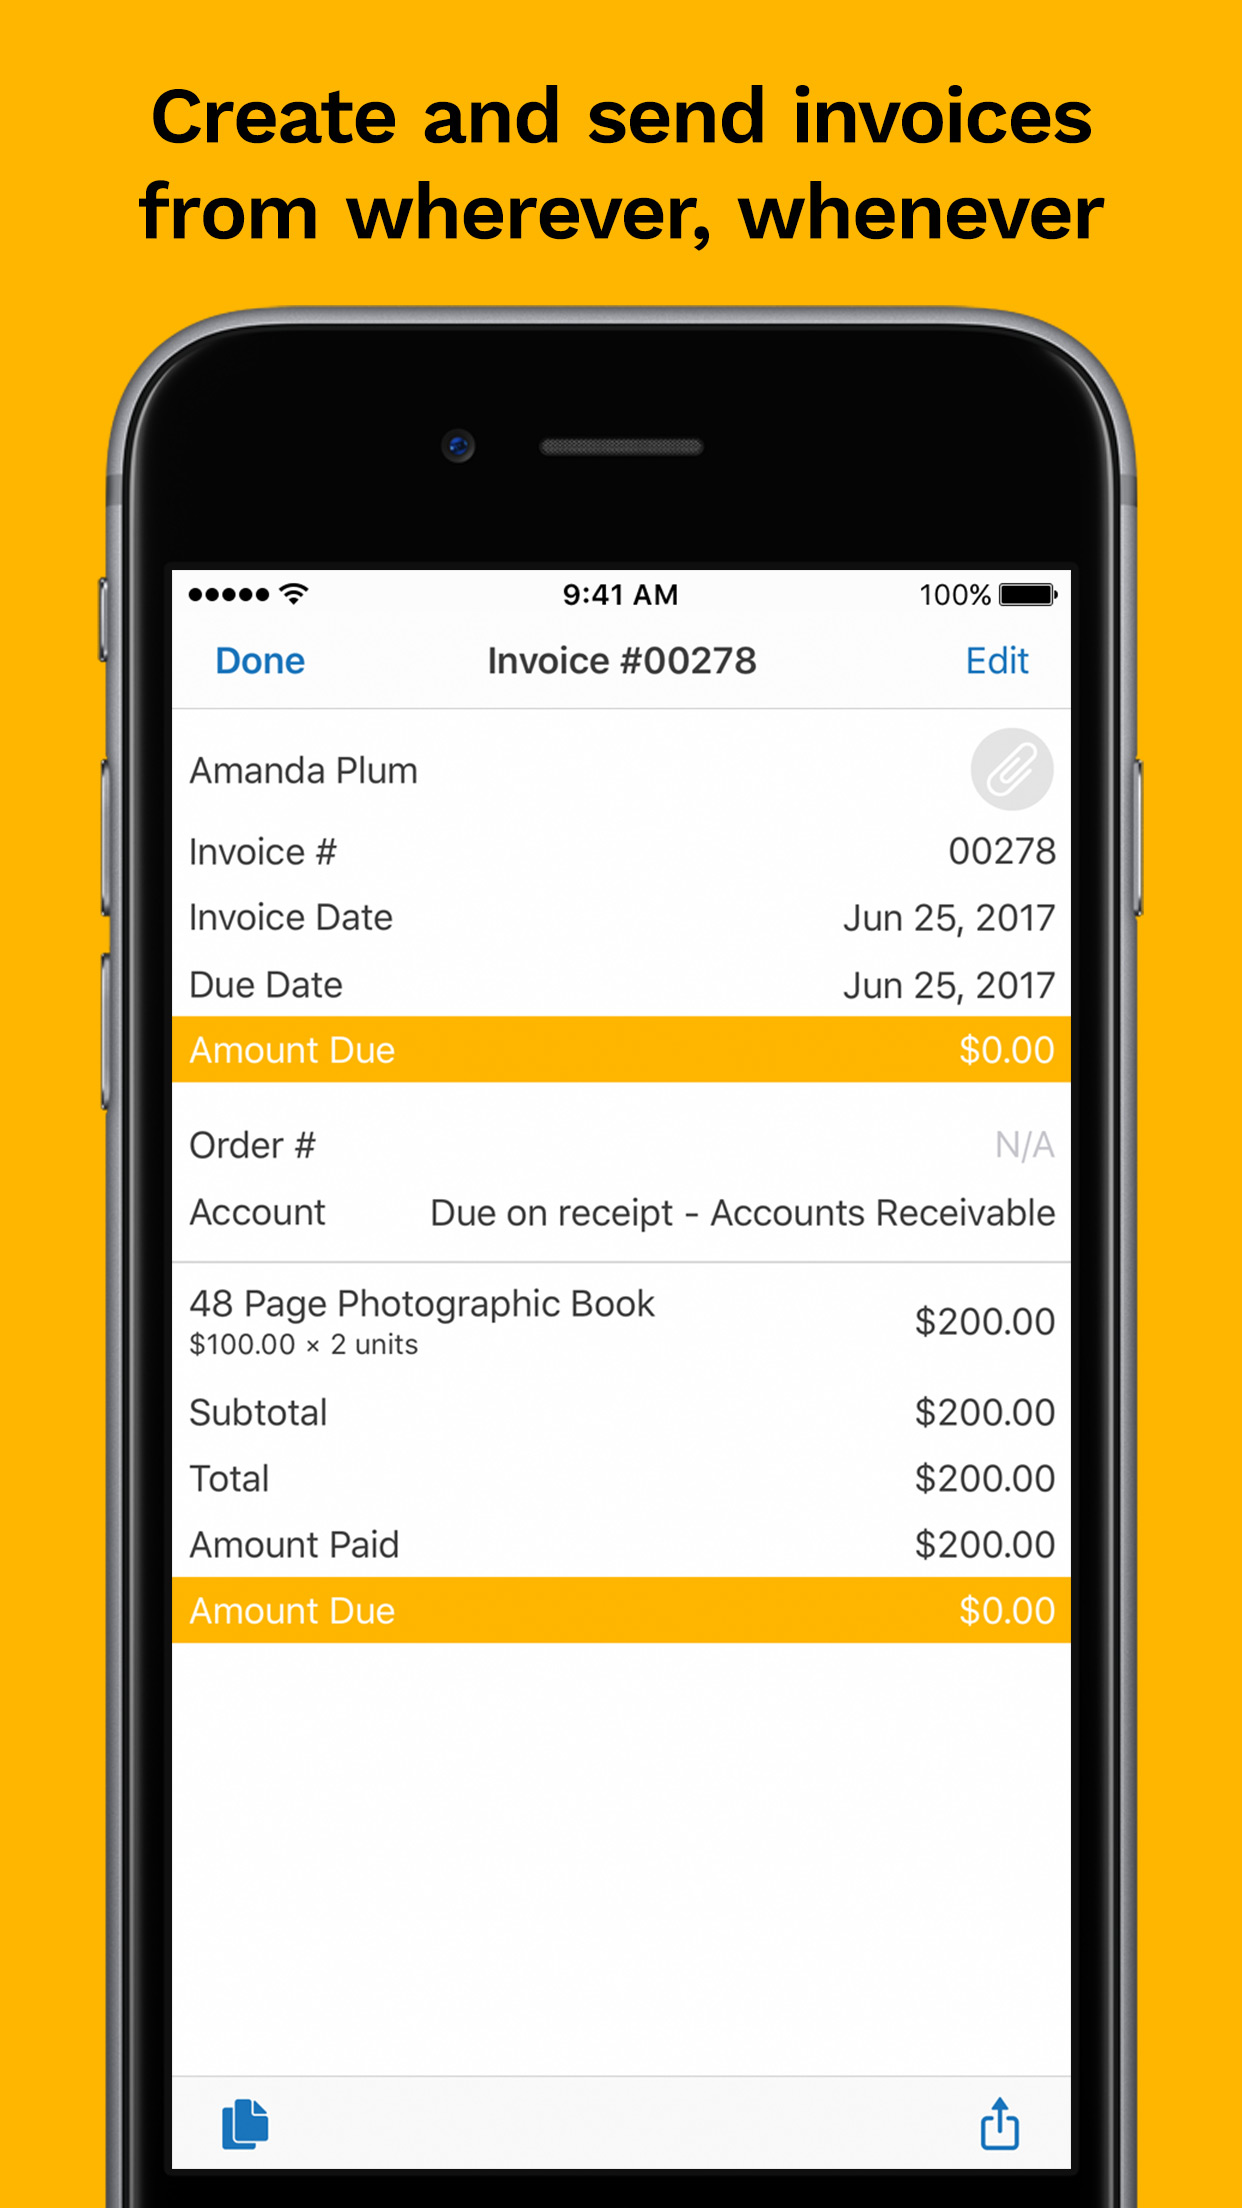 Kashoo Demo - Create Invoices (iPhone app)